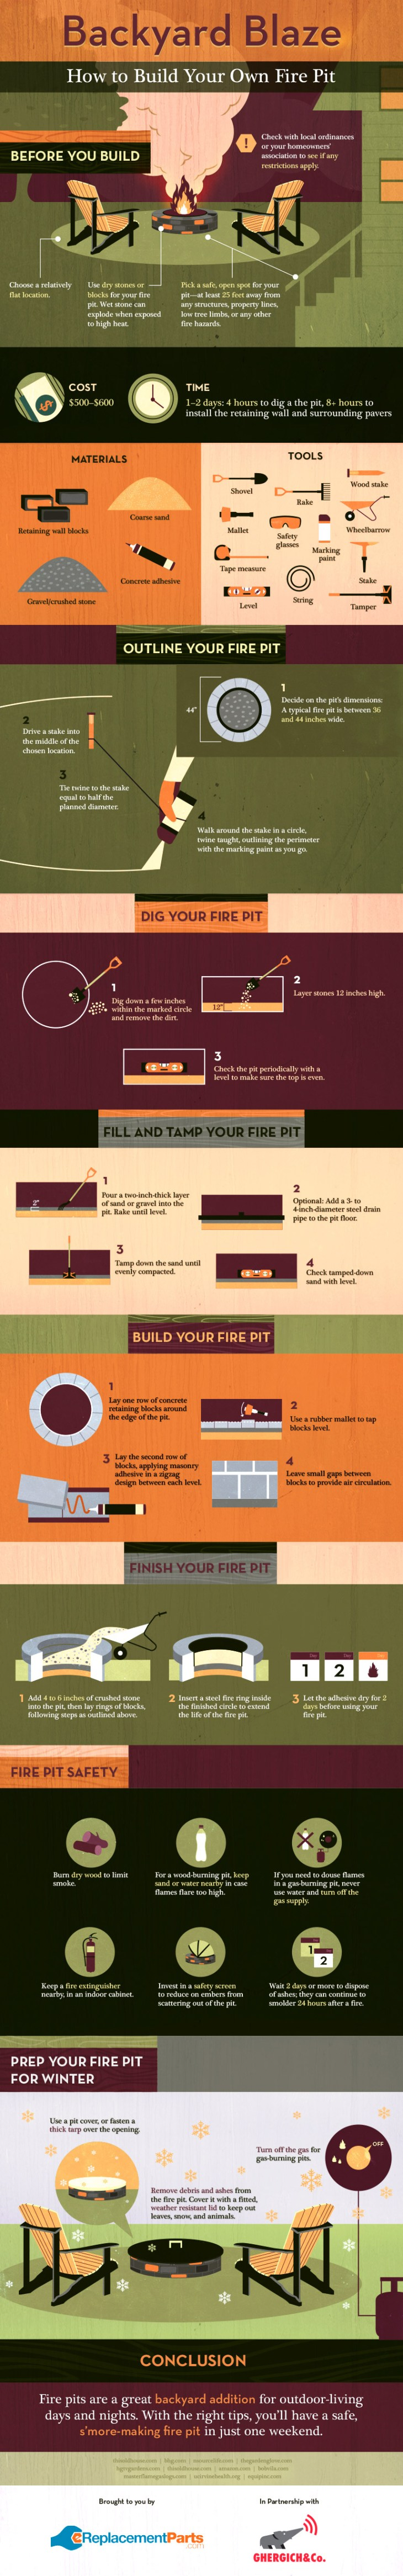 DIY Fire Pit Infographic